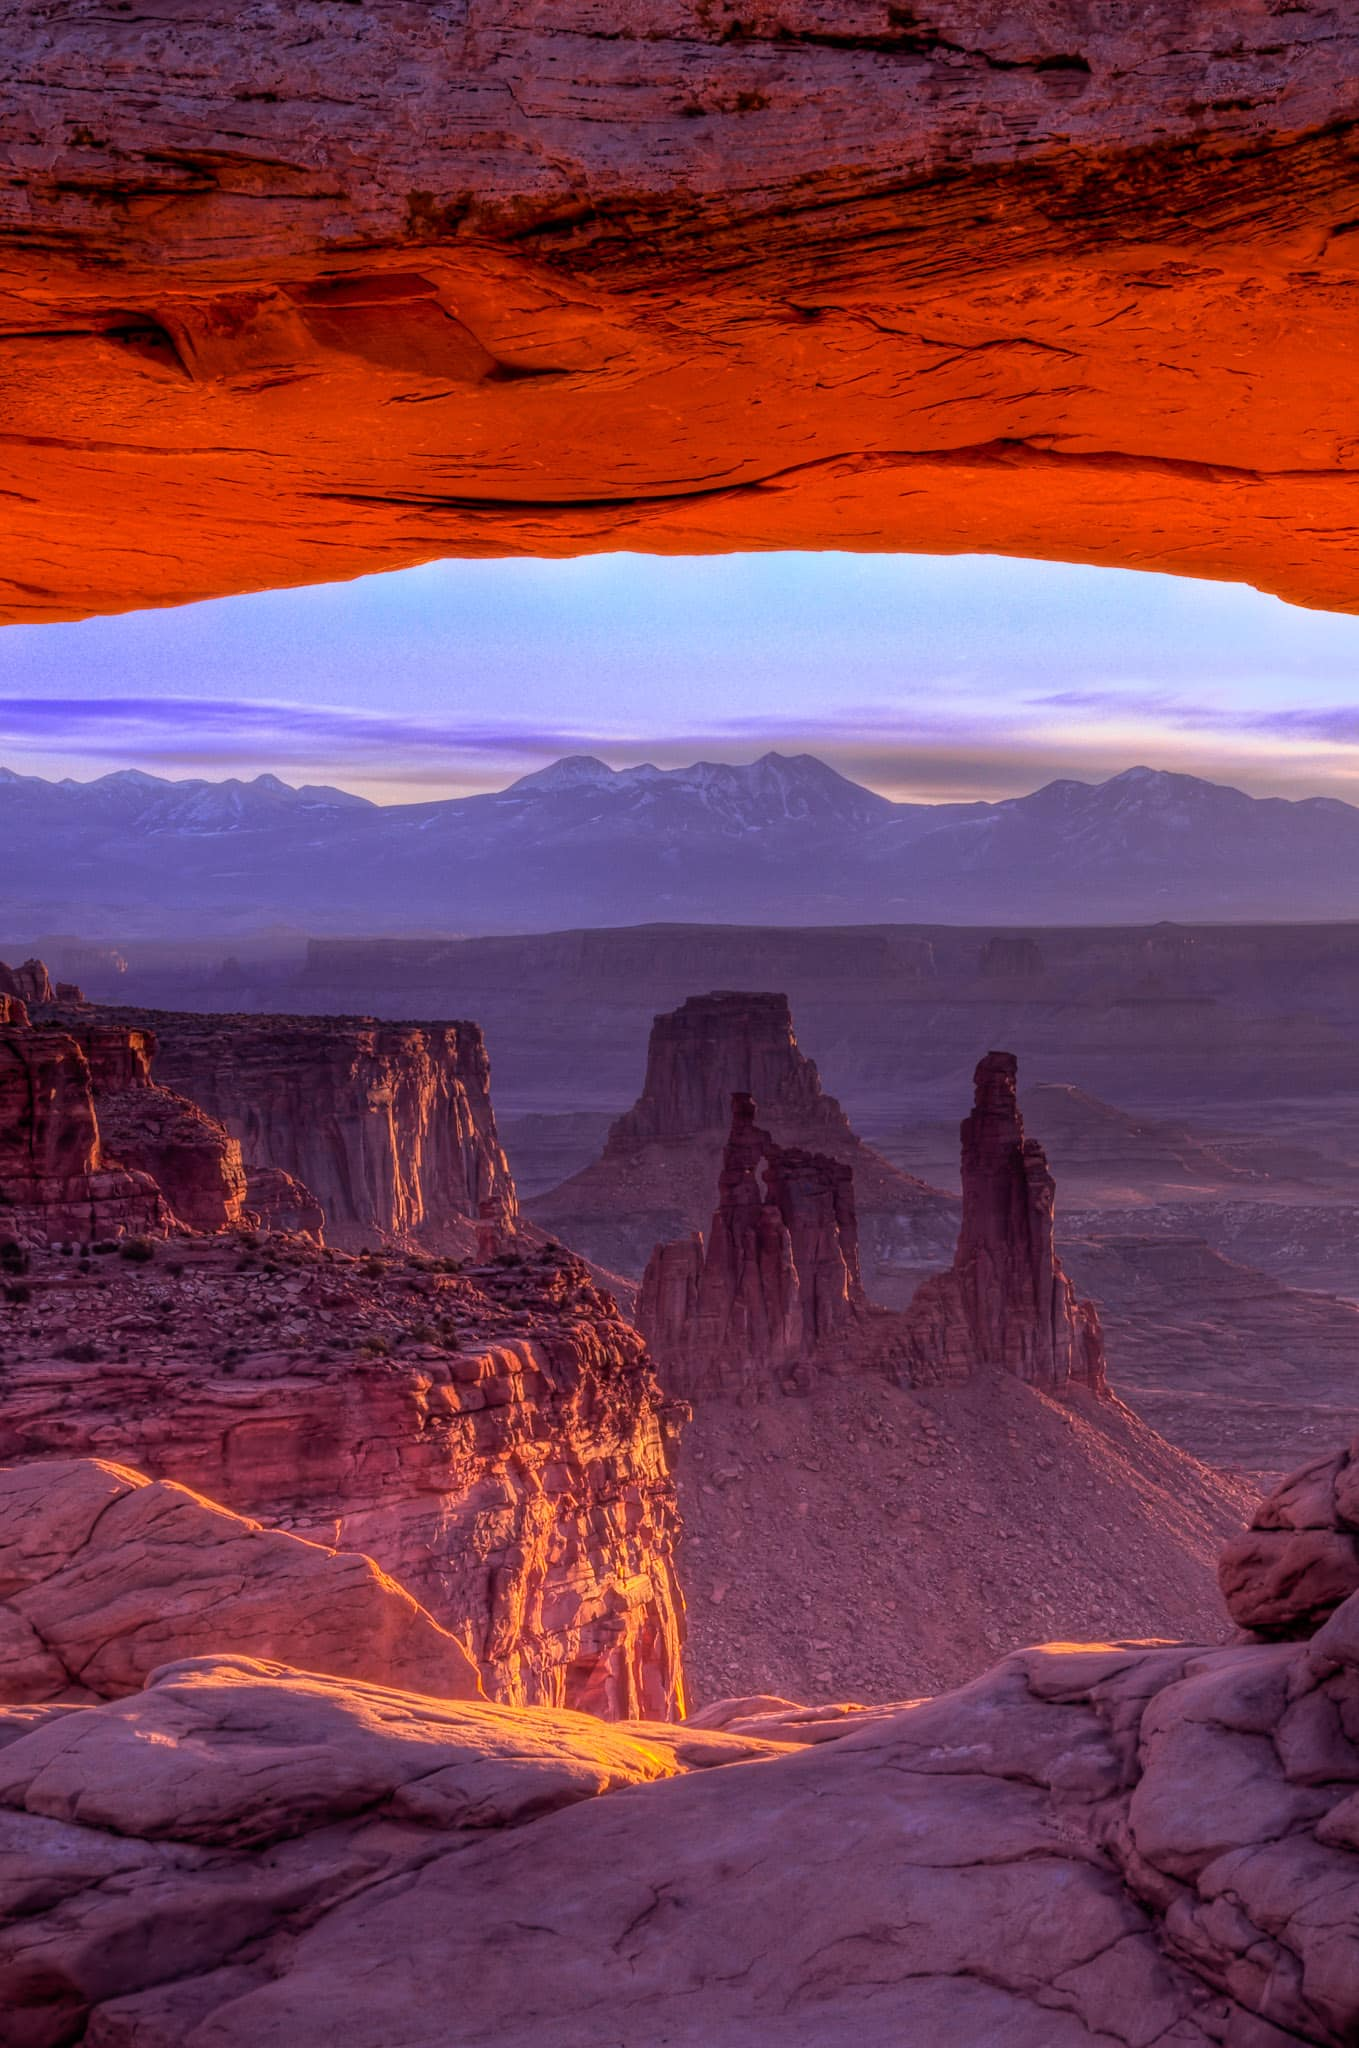 At dawn, looking east through Mesa Arch in Canyonlands National Park.